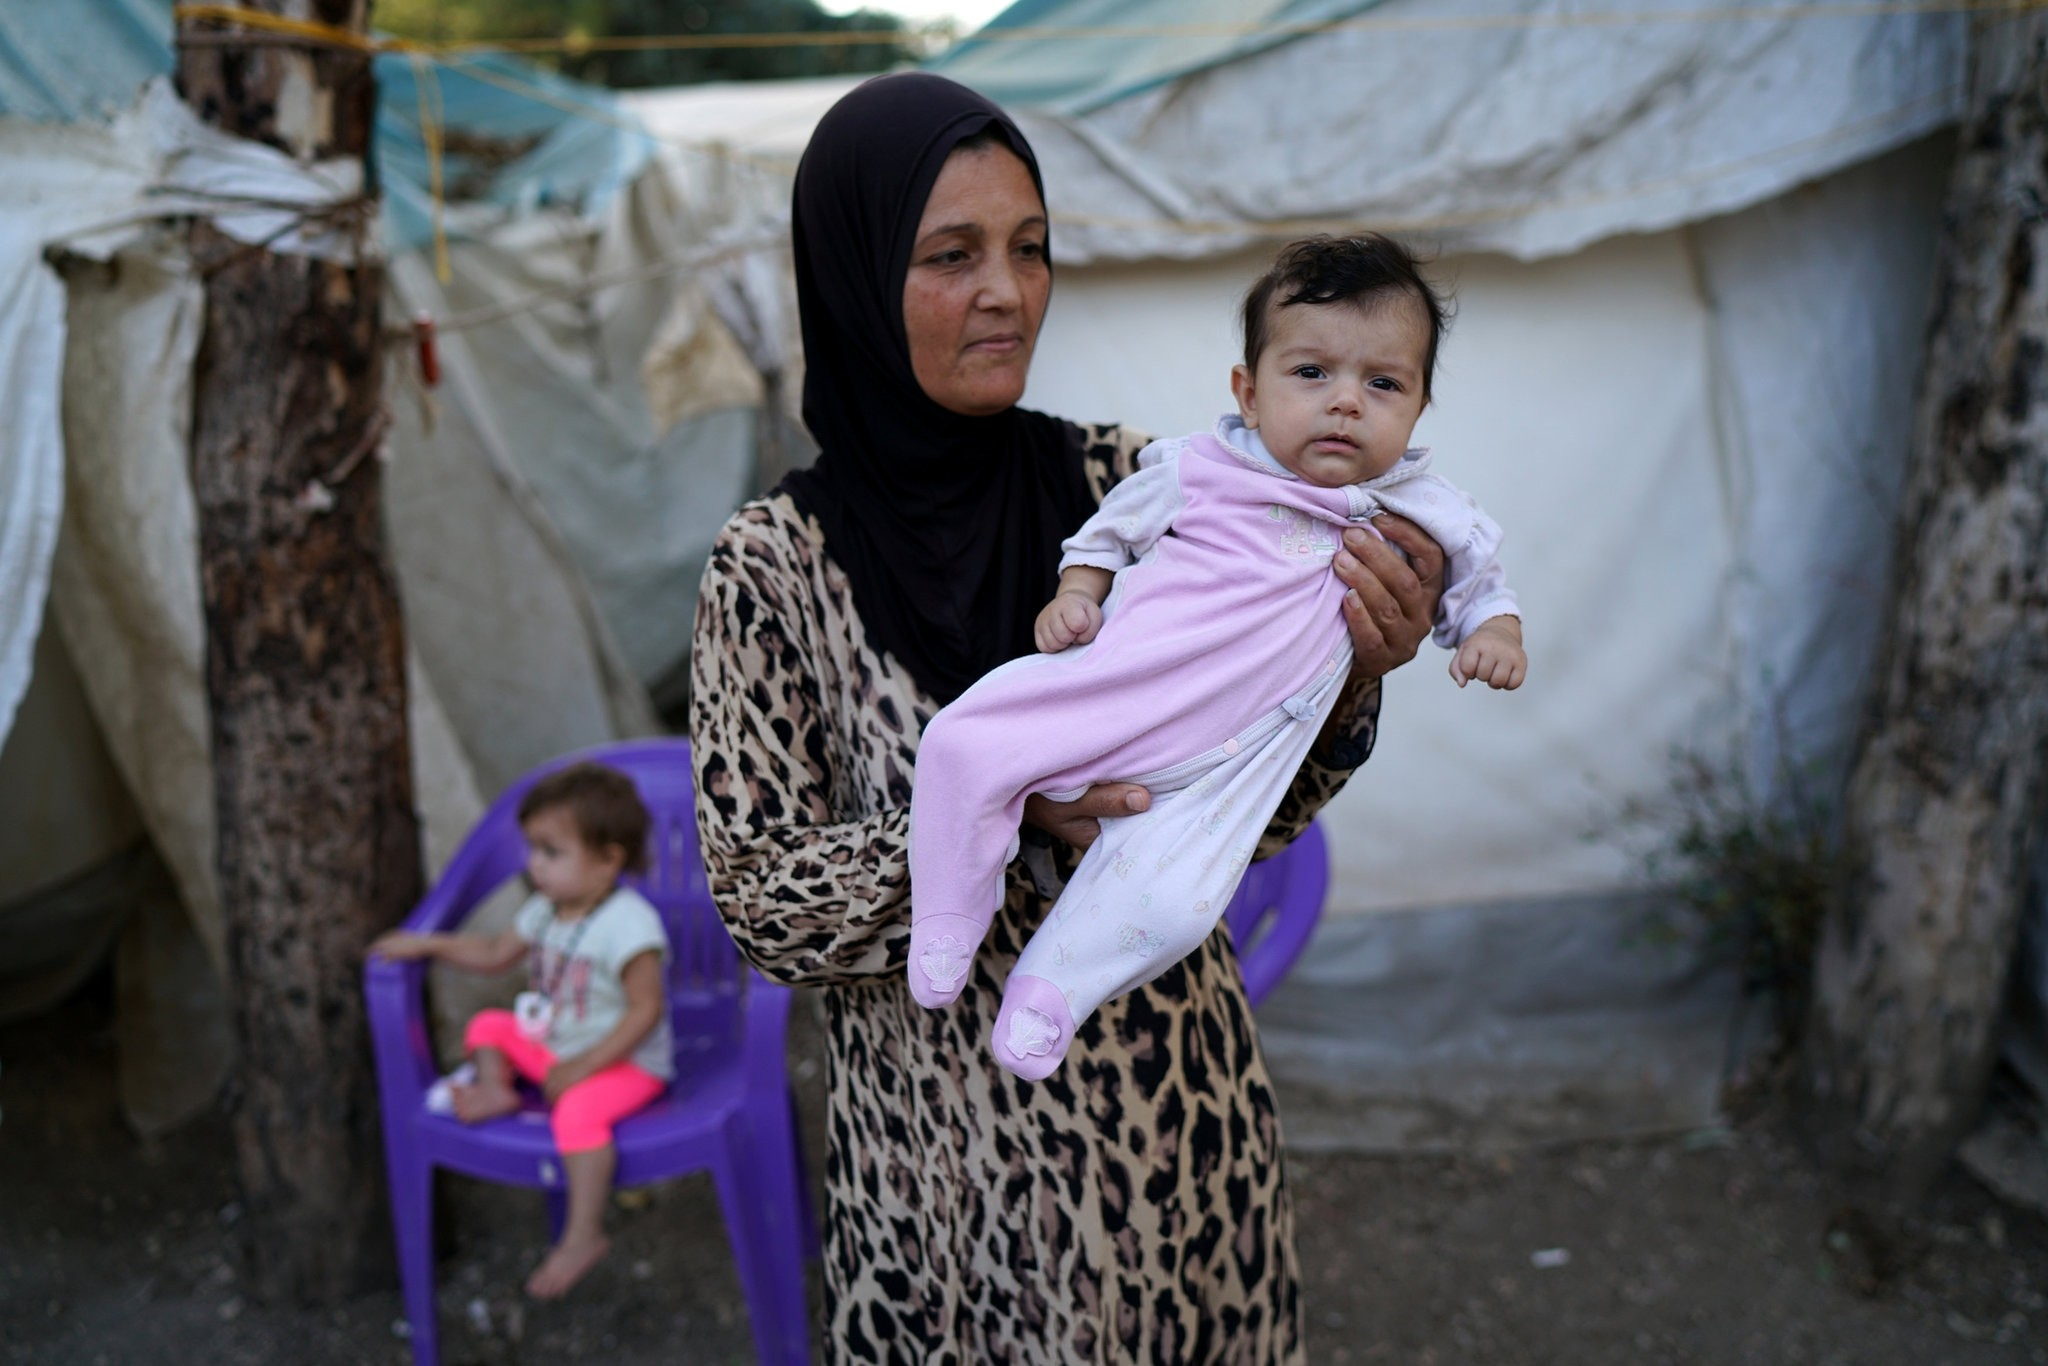 A Syrian refugee mother poses with her baby in front of their tent in Yayladagi refugee camp in Hatay province. (Reuters Photo)